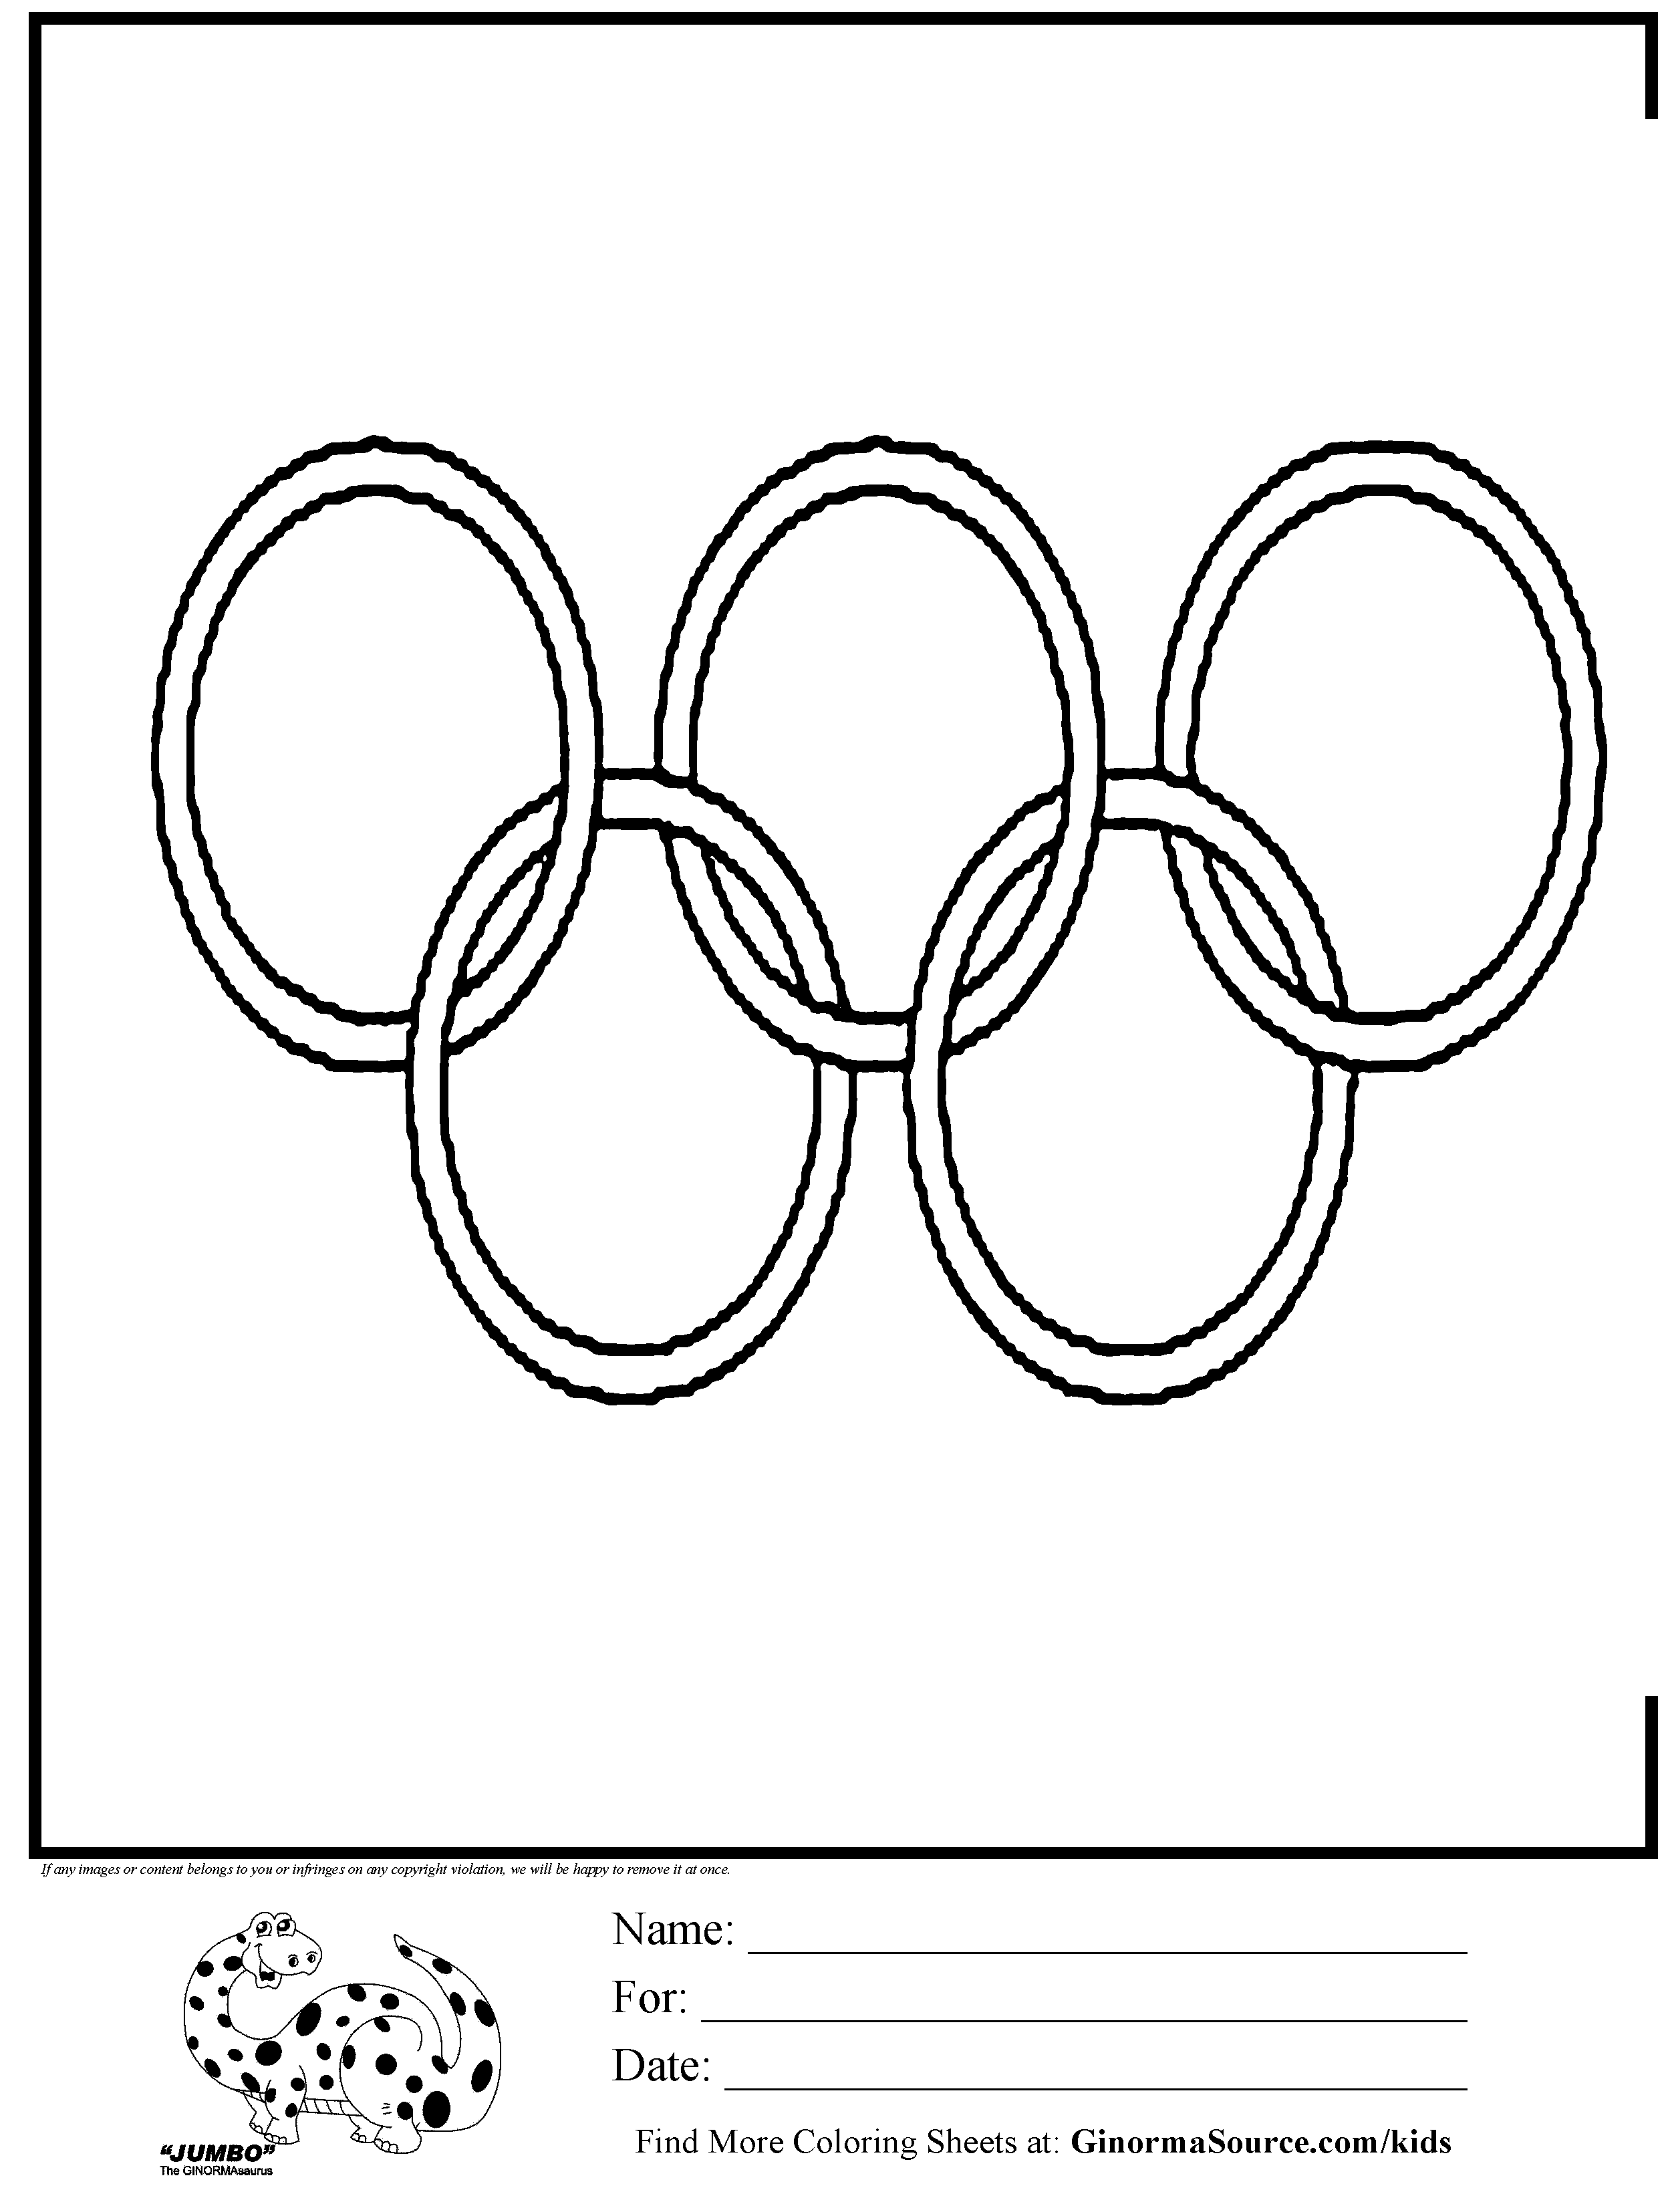 OLYMPICS ring coloring with ordinal number directions